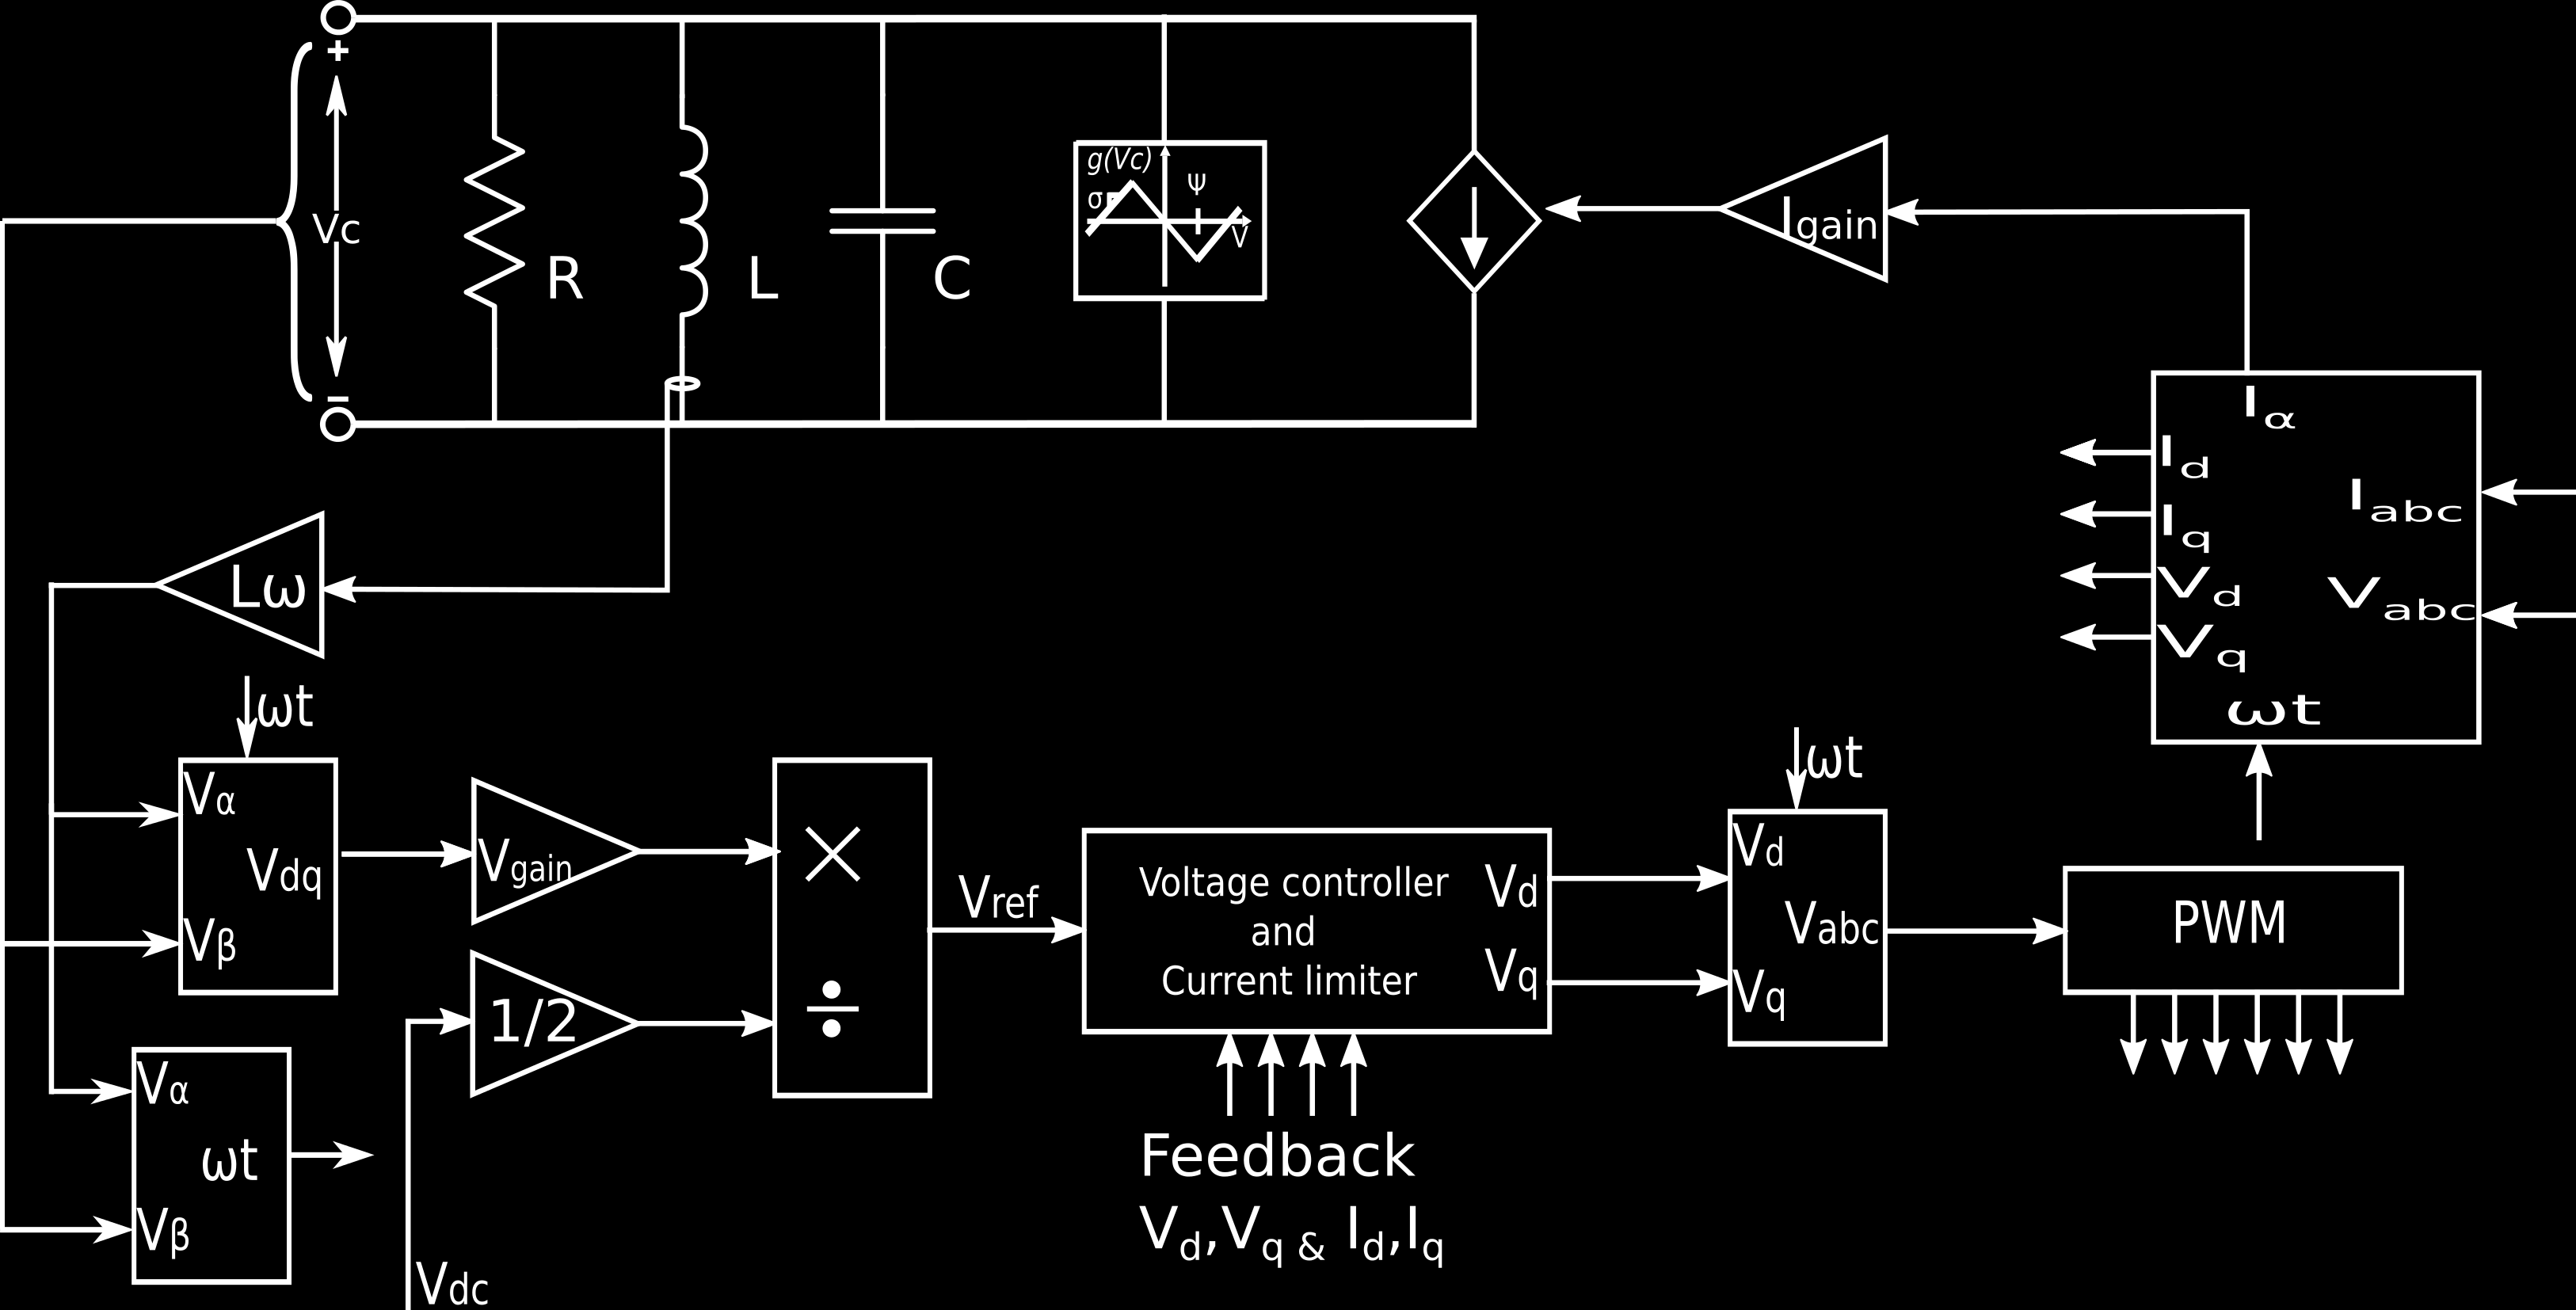 Single Stage High Frequency Isolated Grid Connected Inverter Circuits In This Case Is The Crystal Drive Circuit Fig 1 A Figure 2 Non Linear Rlc Oscillator 4 Implementation Of